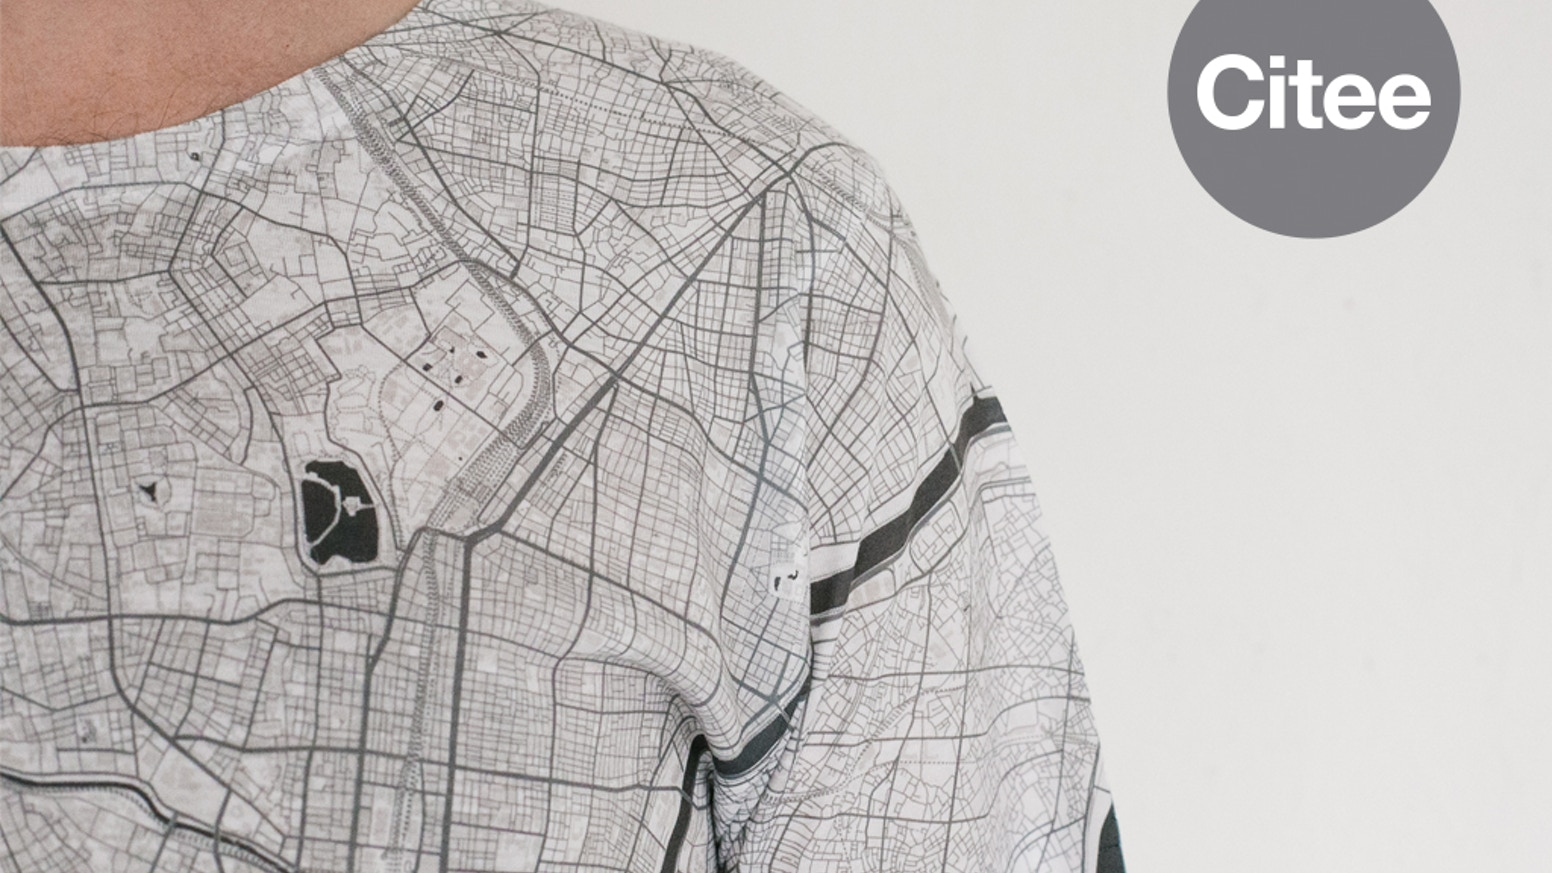 T-shirts showing detailed maps of cities all over the world. From Brighton to Berlin, Norwich to New York, there's a t-shirt for you.